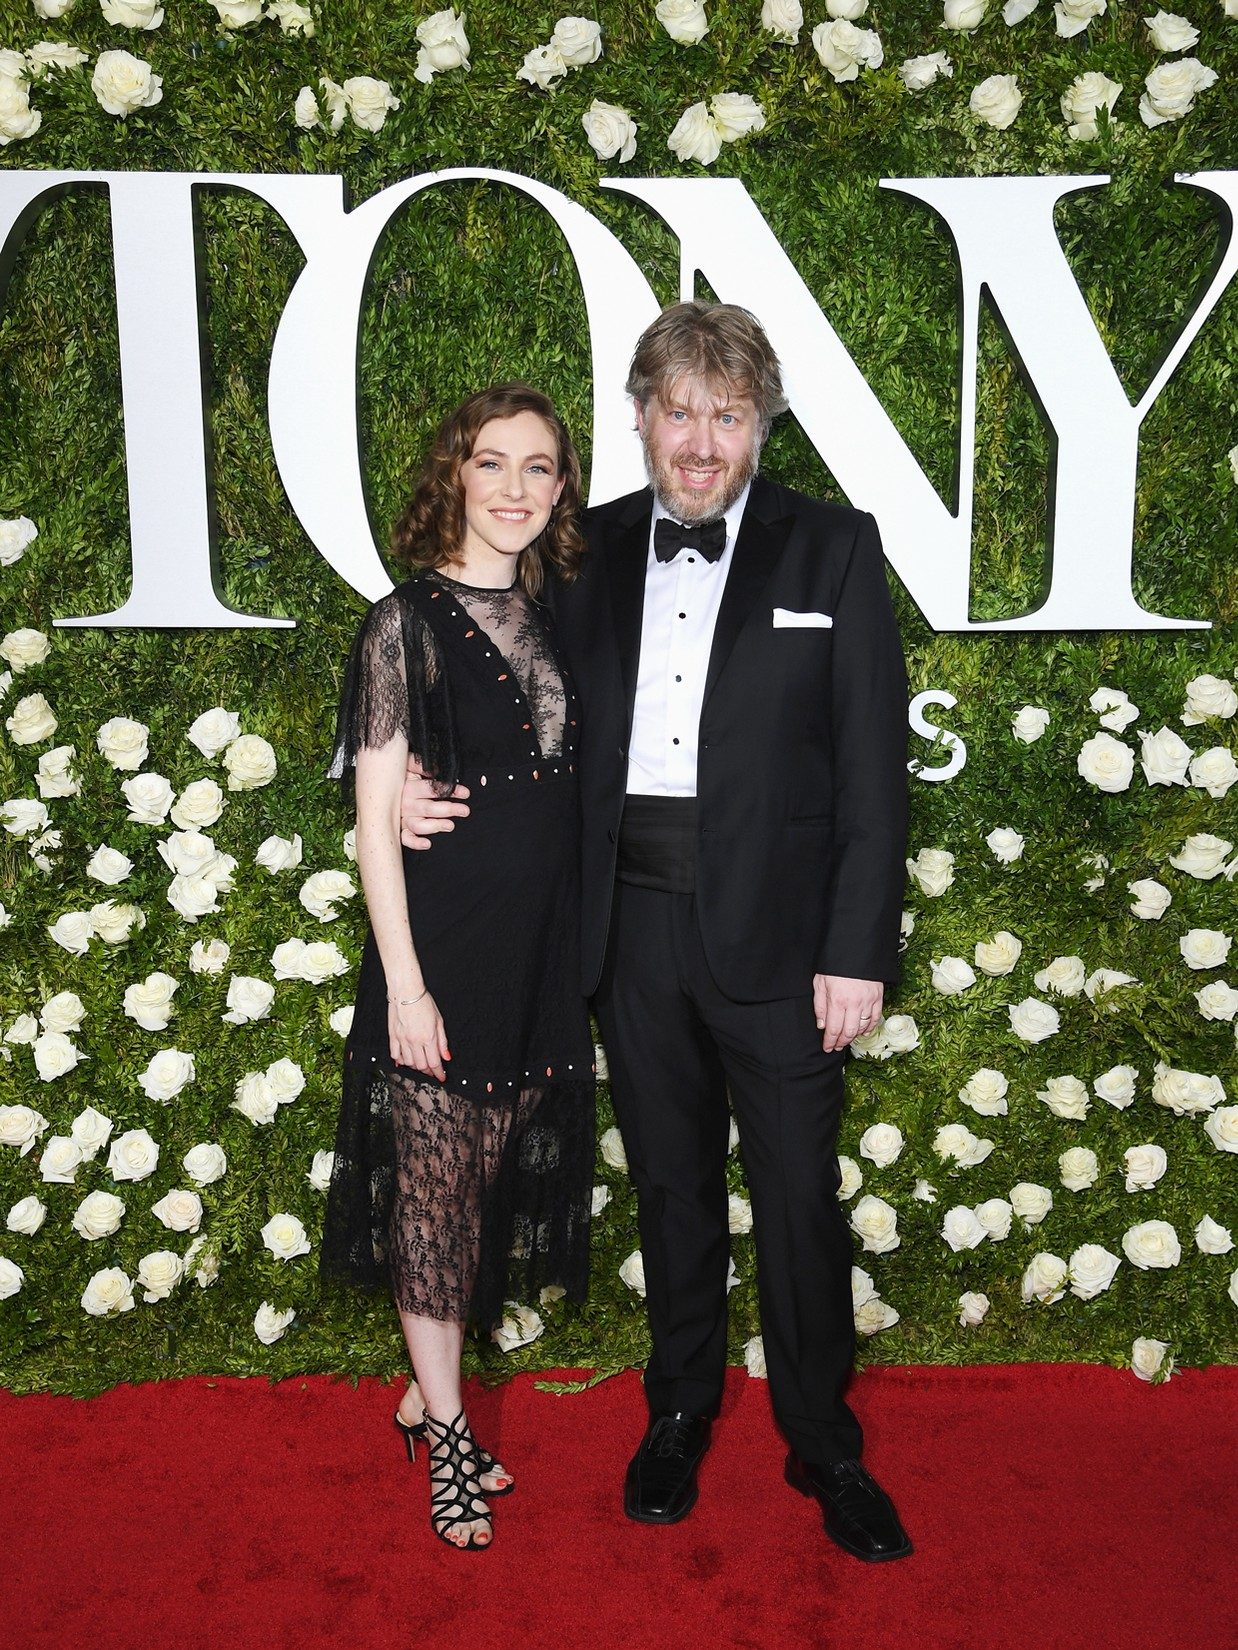 Eliza Bent and Dave Malloy attend the 2017 Tony Awards at Radio City Music Hall on June 11, 2017 in New York City.